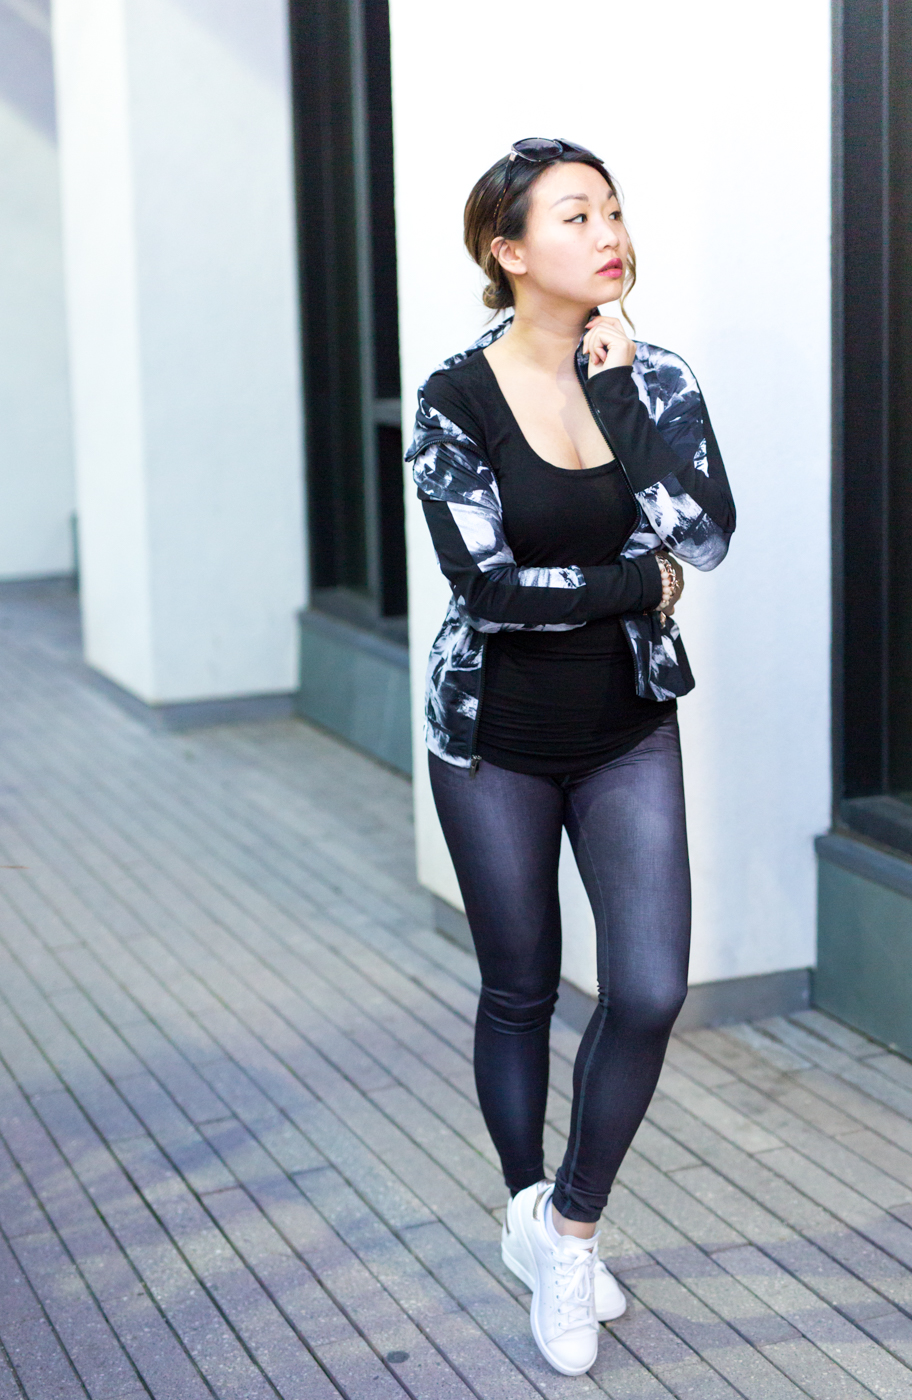 lucy indiGO Run Tights | The Chic Diary